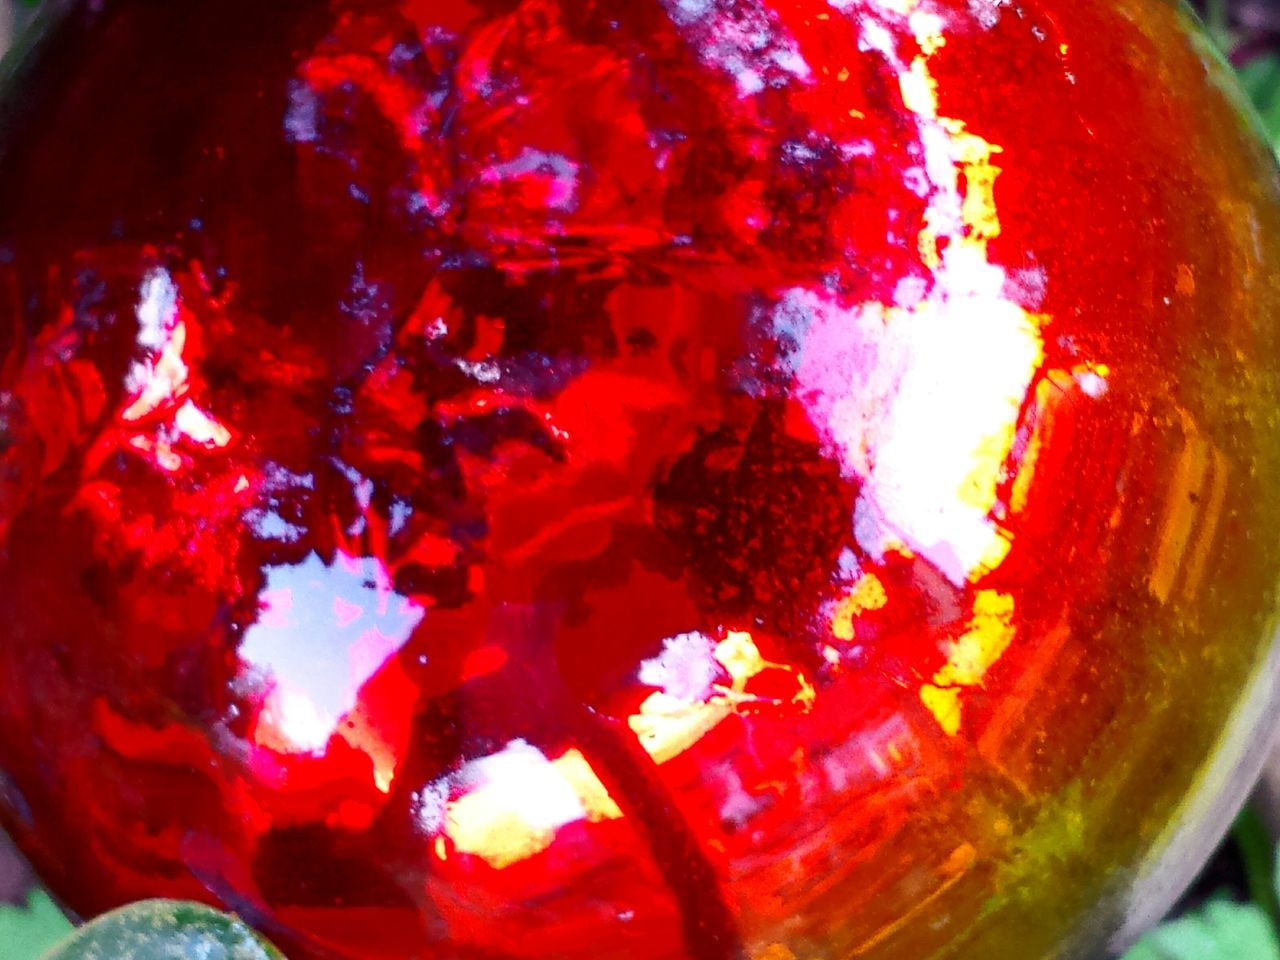 Gartenkugel Glaskugel Red Mirroring Spiegelung In Glaskugel Red Album Red Collection Stained Glass Globe Garden Globe Close-up Close Up Macro Macro Photography Macro_collection